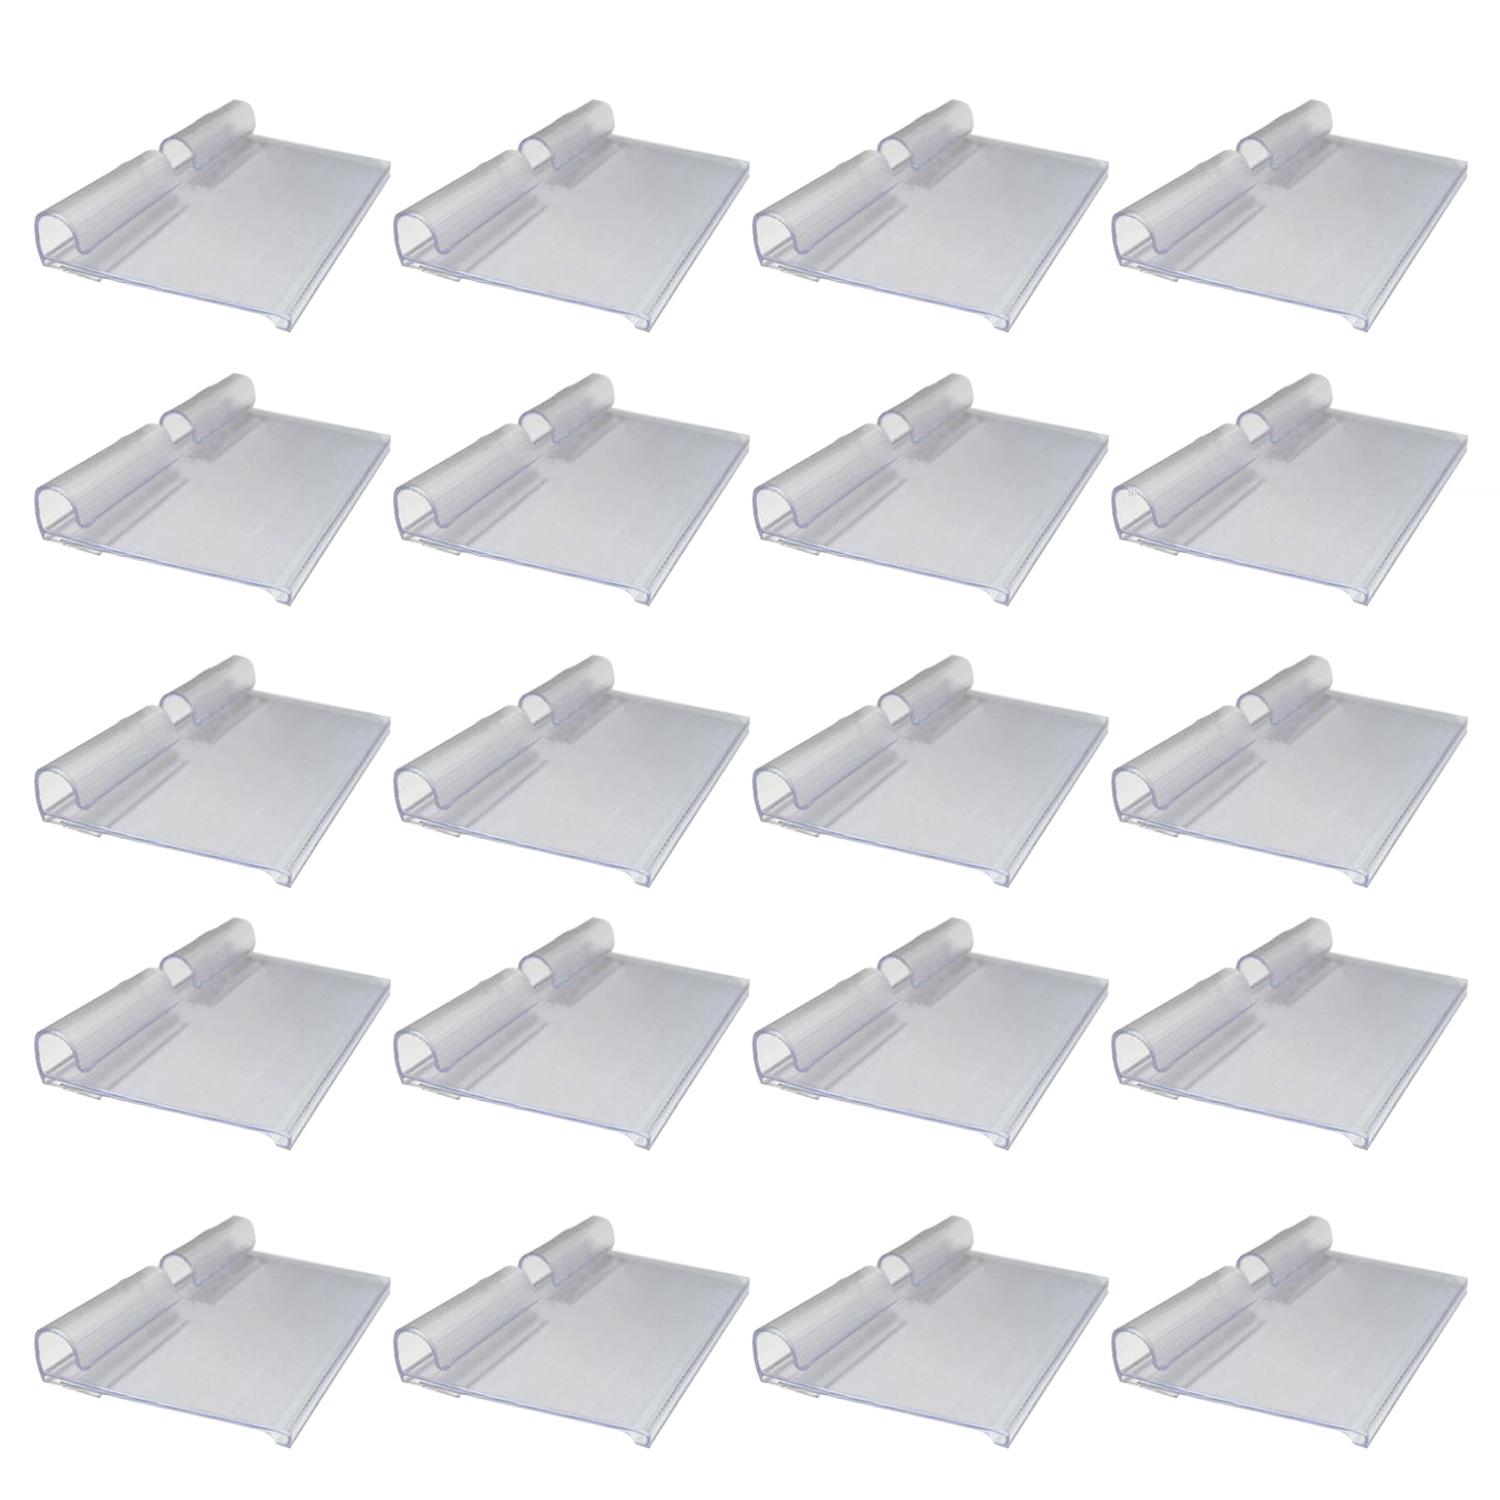 50pcs Translucent Plastic Wire Shelf Price Label Holders Merchandise Sign Display Holder For Shop Office Market By Elek